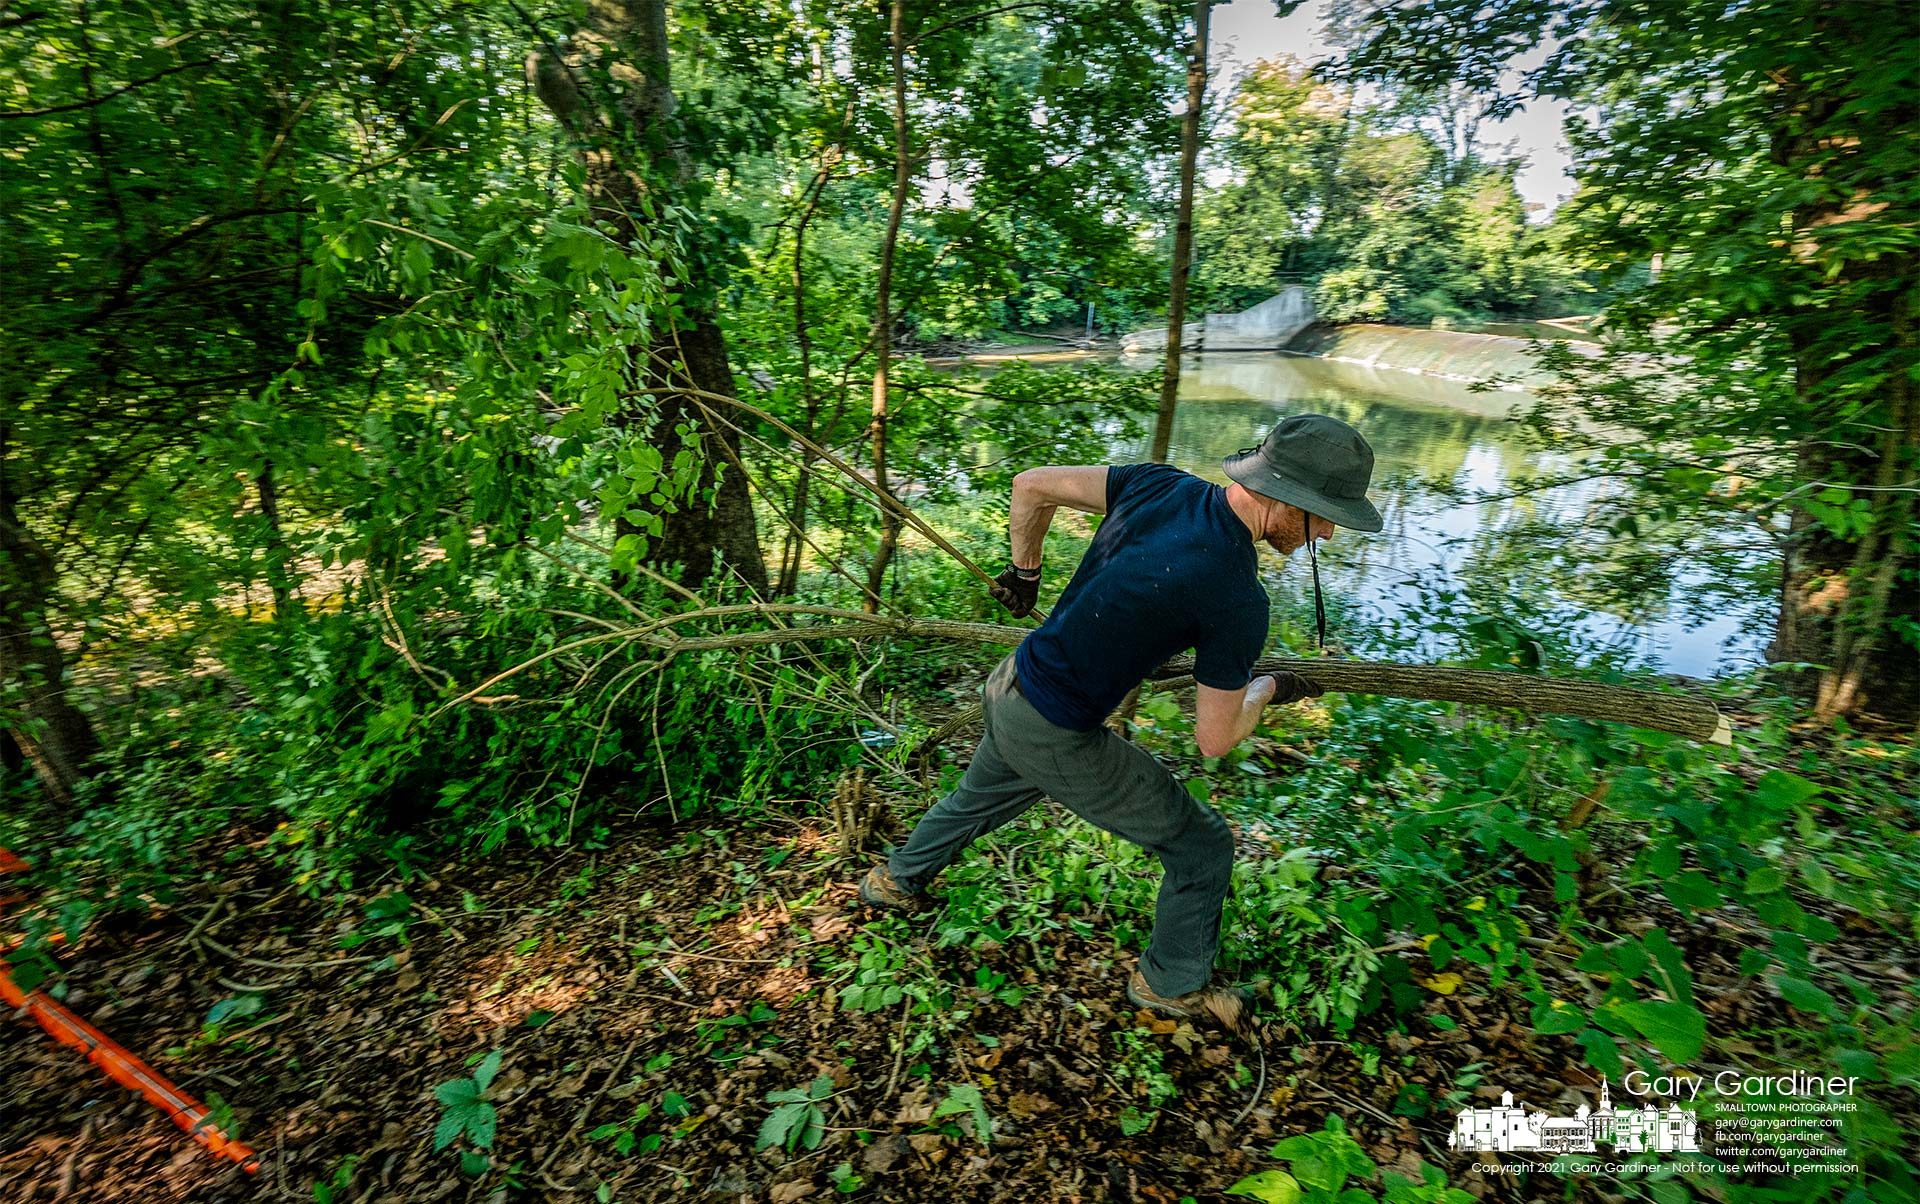 A volunteer removes honeysuckle cut from the banks of Alum Creek just below the dam at Alum Creek Park North during a program Saturday to remove invasive species from the creek. My Final Photo for Aug. 21. 2021.